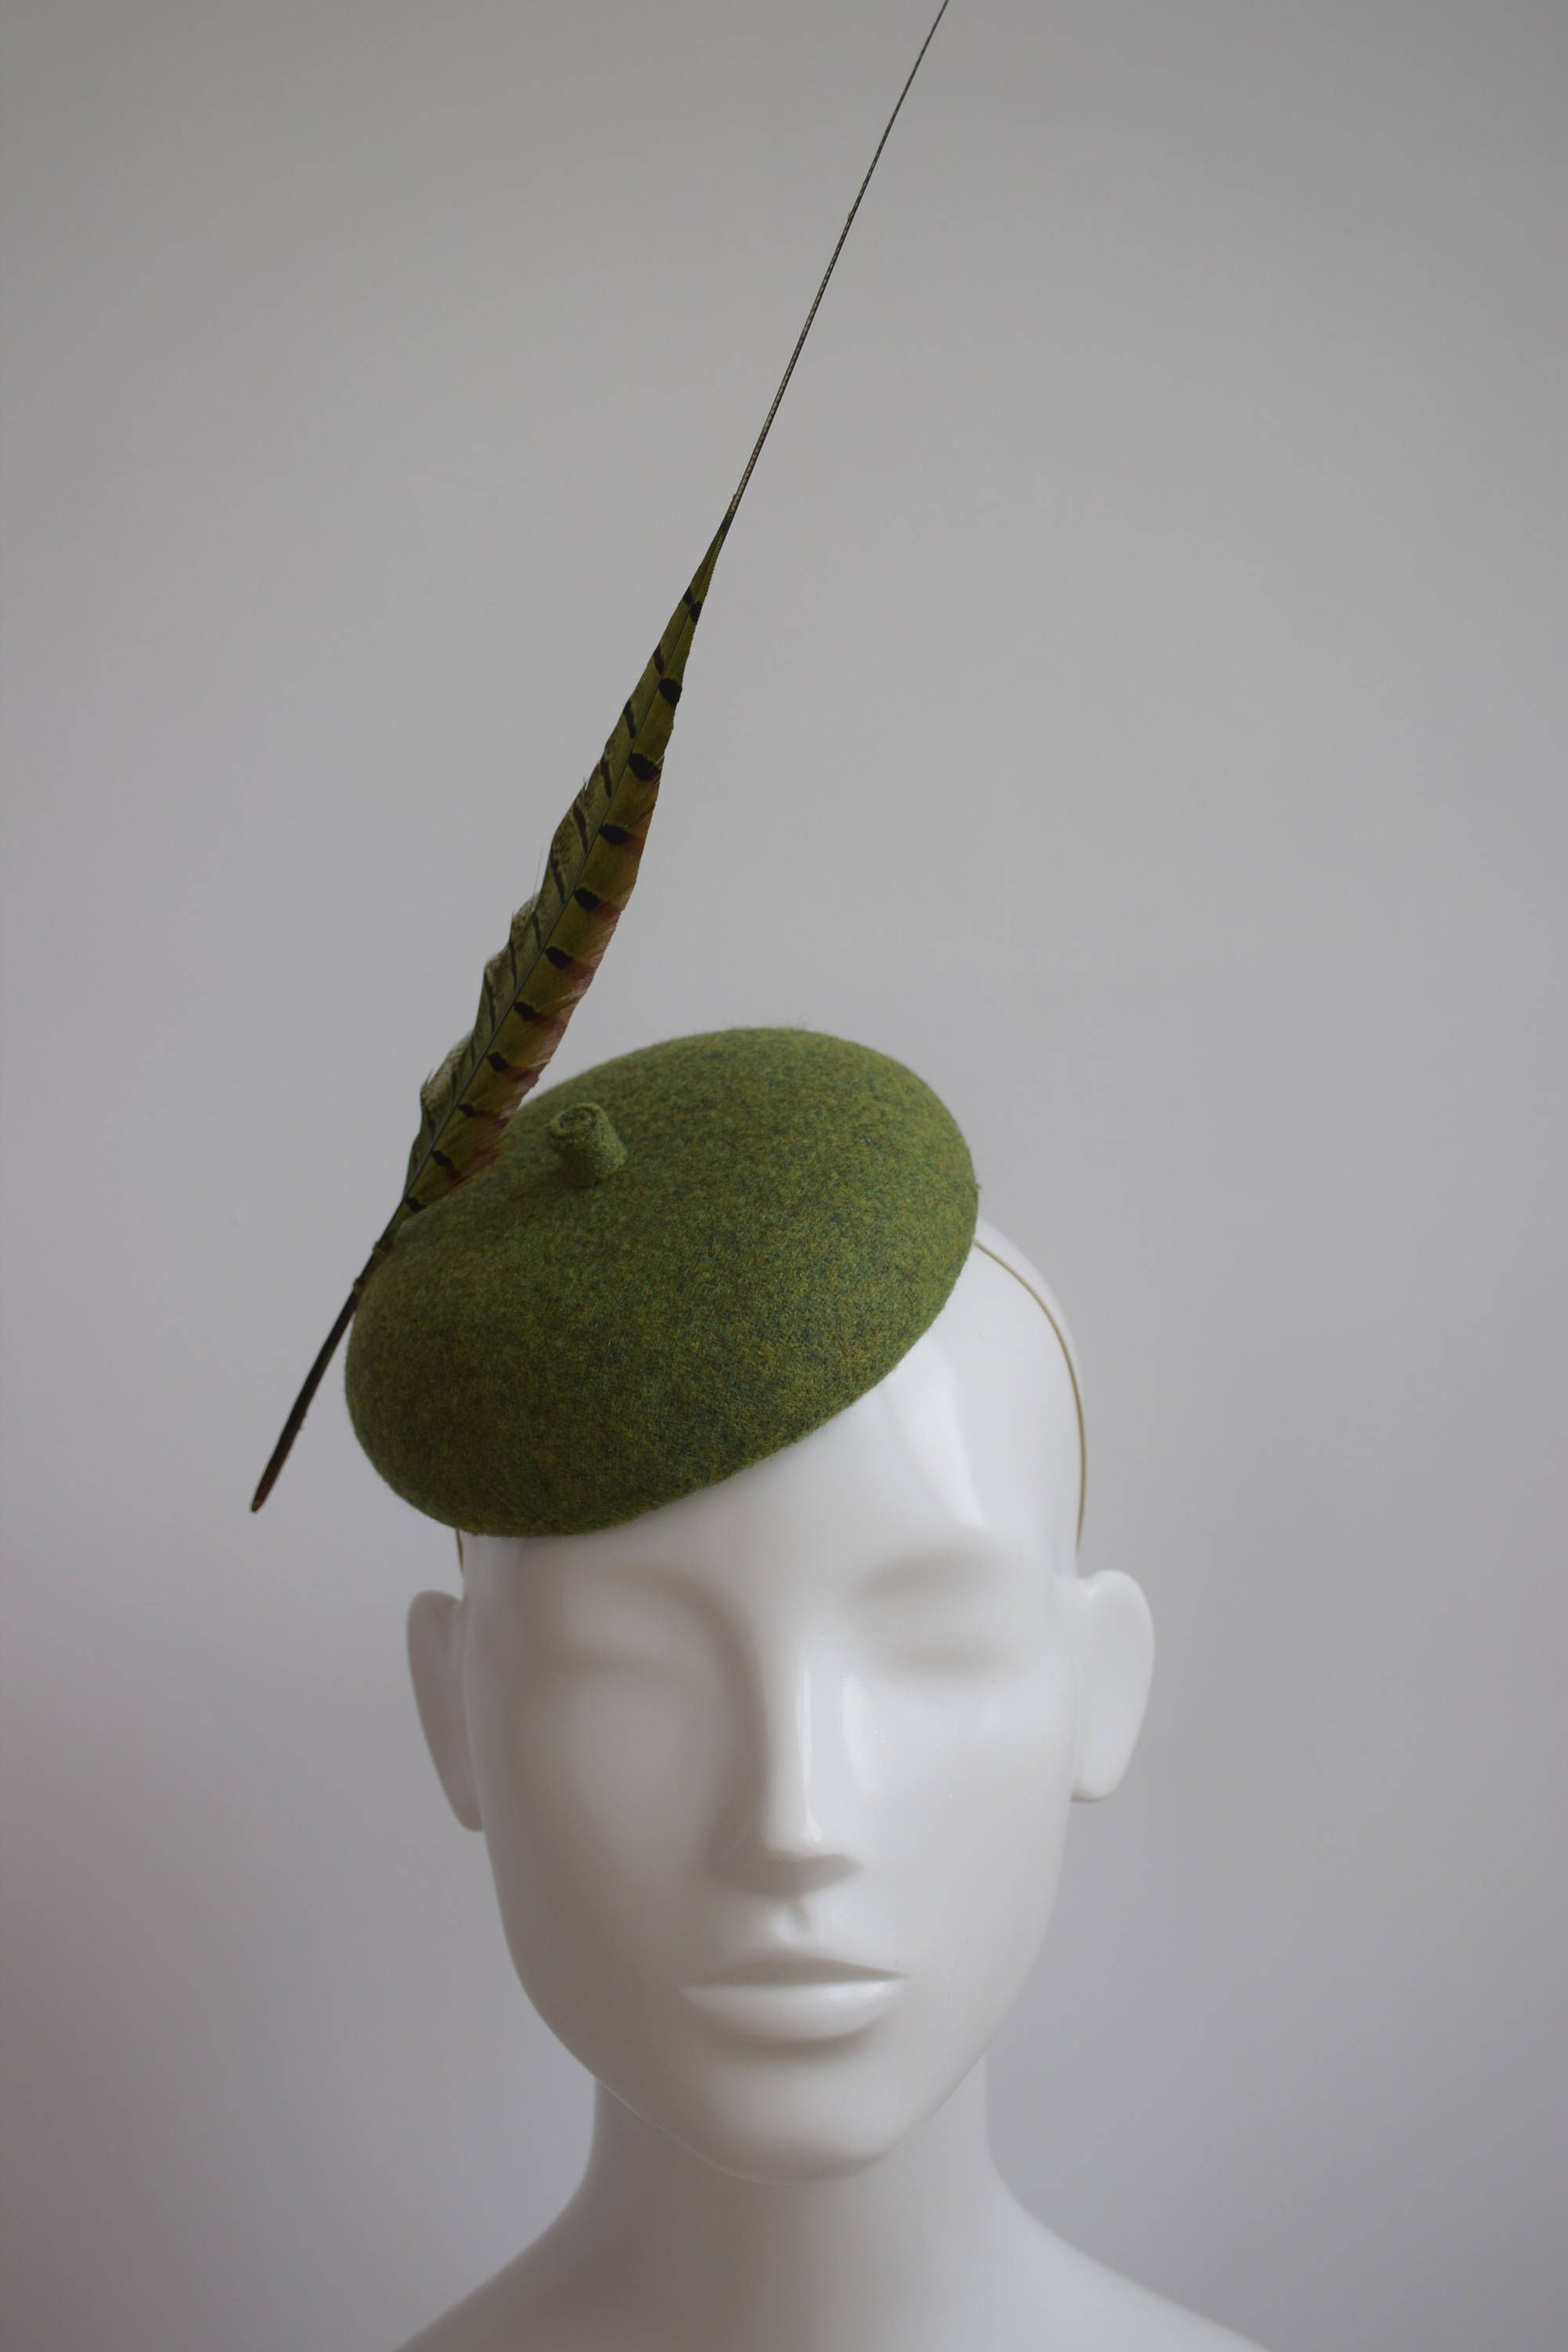 dfa37add94811 Parisian Style - English Country Green Tweed Beret - Green Pheasant  Feather- Winter Wedding Hat - Winter Races Hat - Ladies Day - Fascinator by  ...